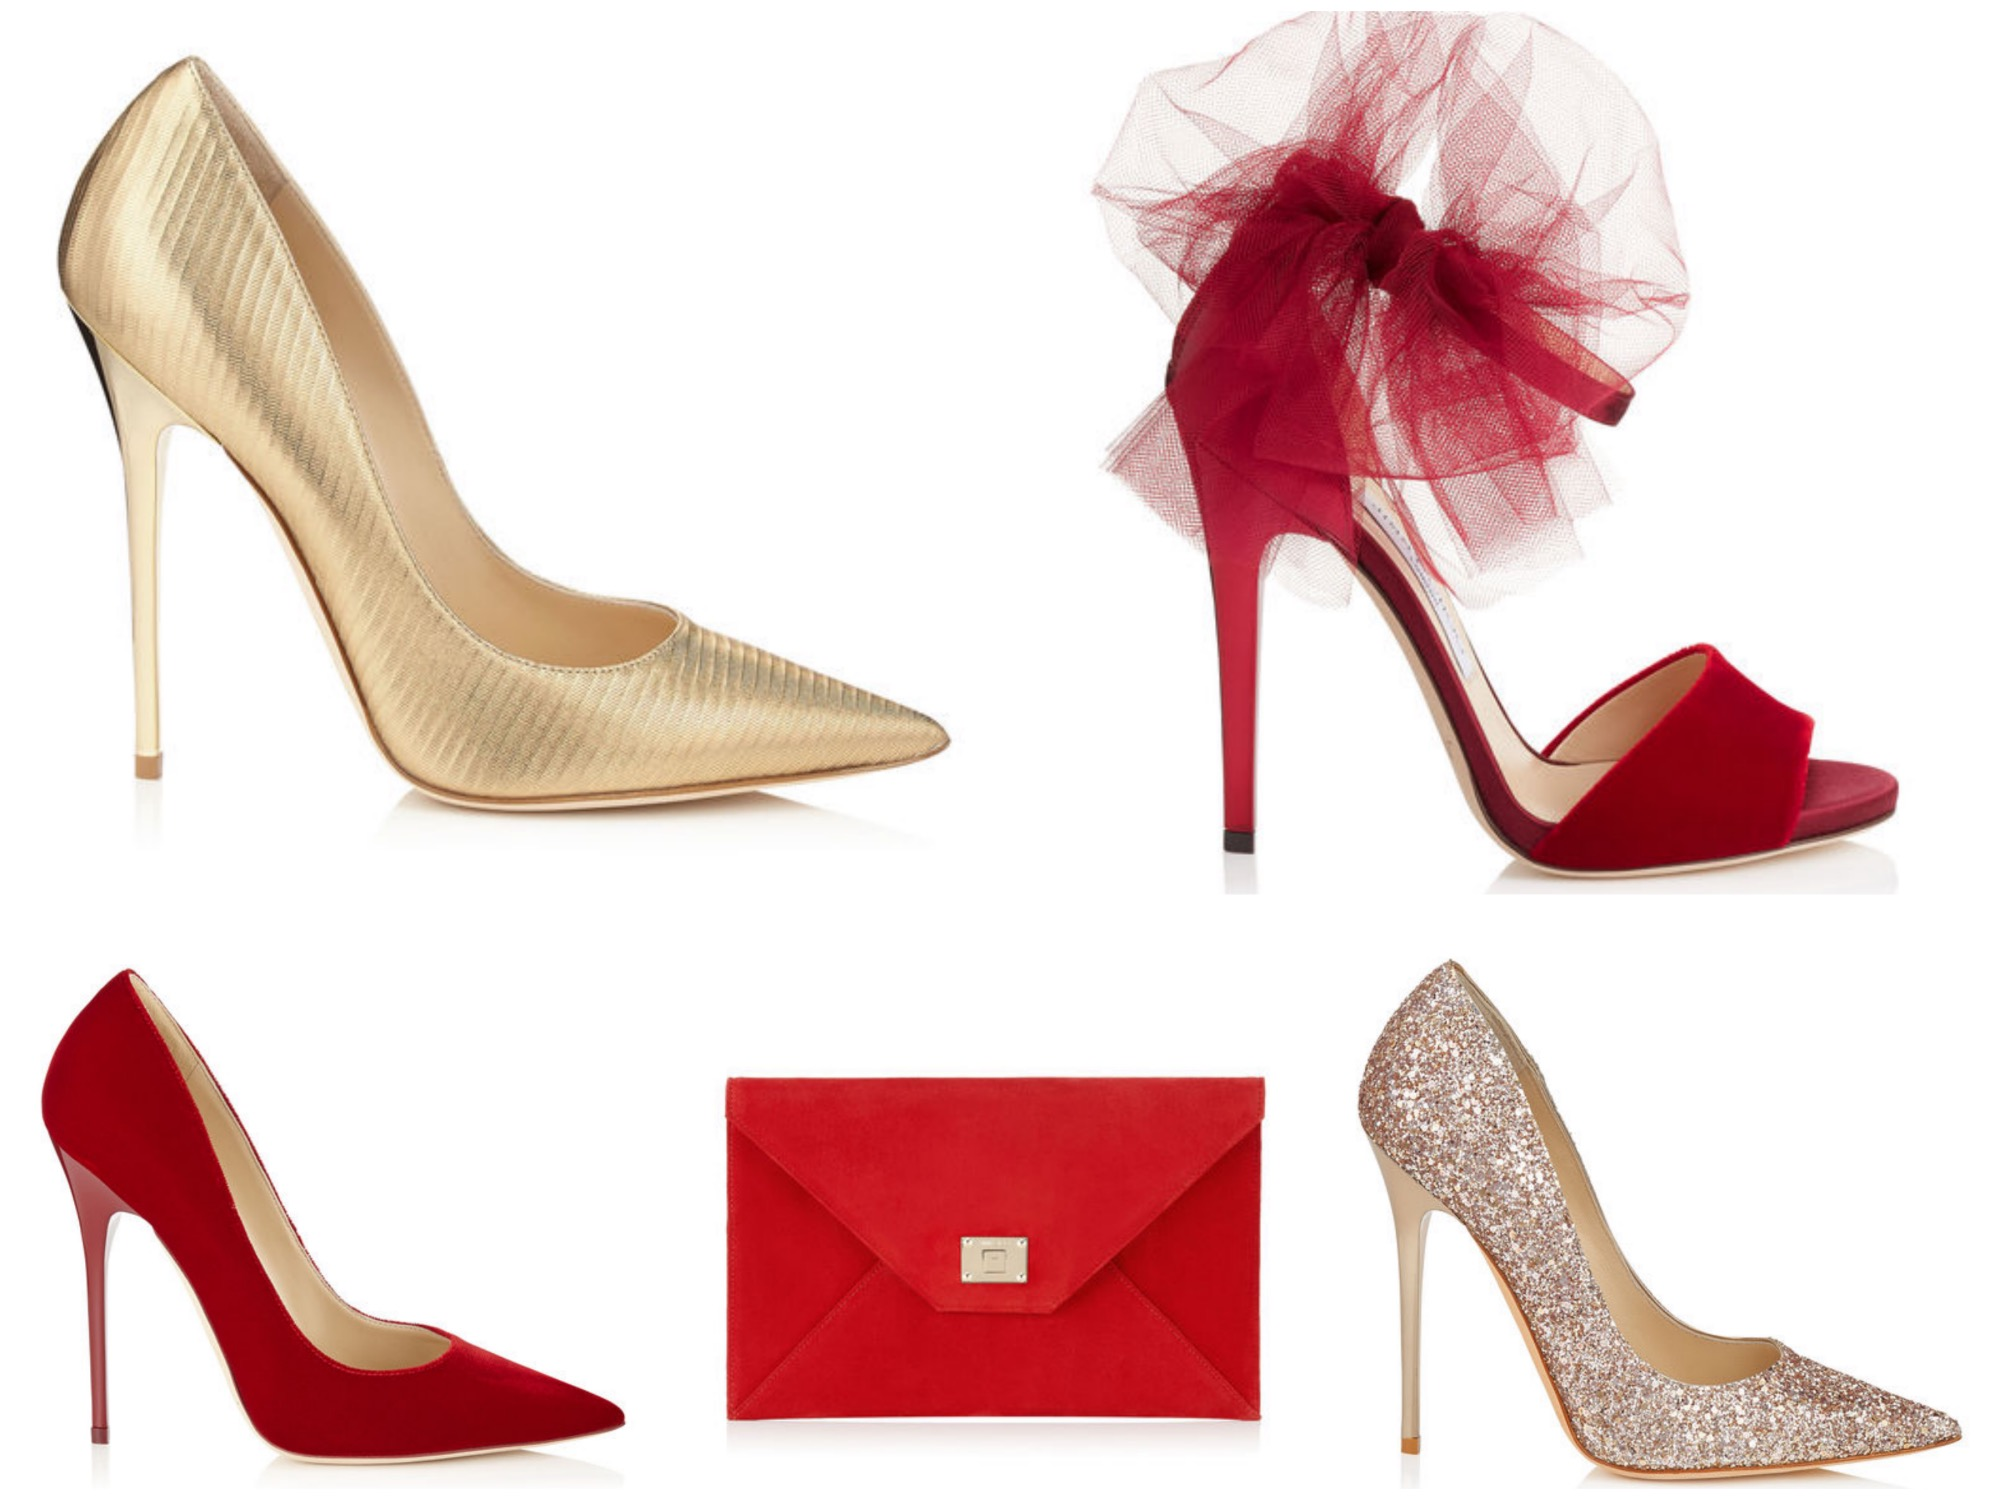 Gold & Red Accessories for the Holiday Season - Jimmy Choo